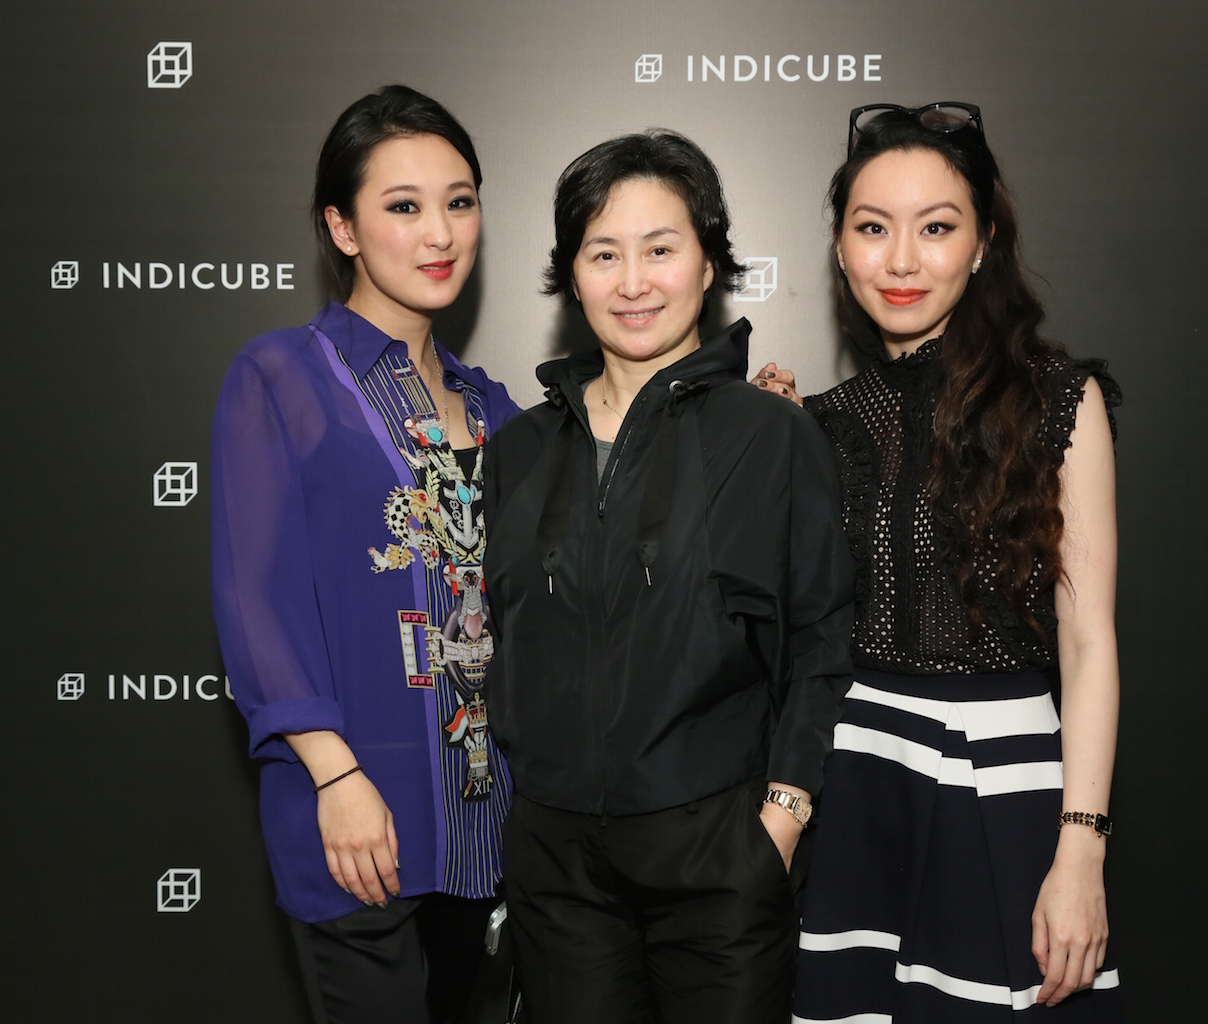 Antonia Li, Pansy Ho, and Ruth Chao